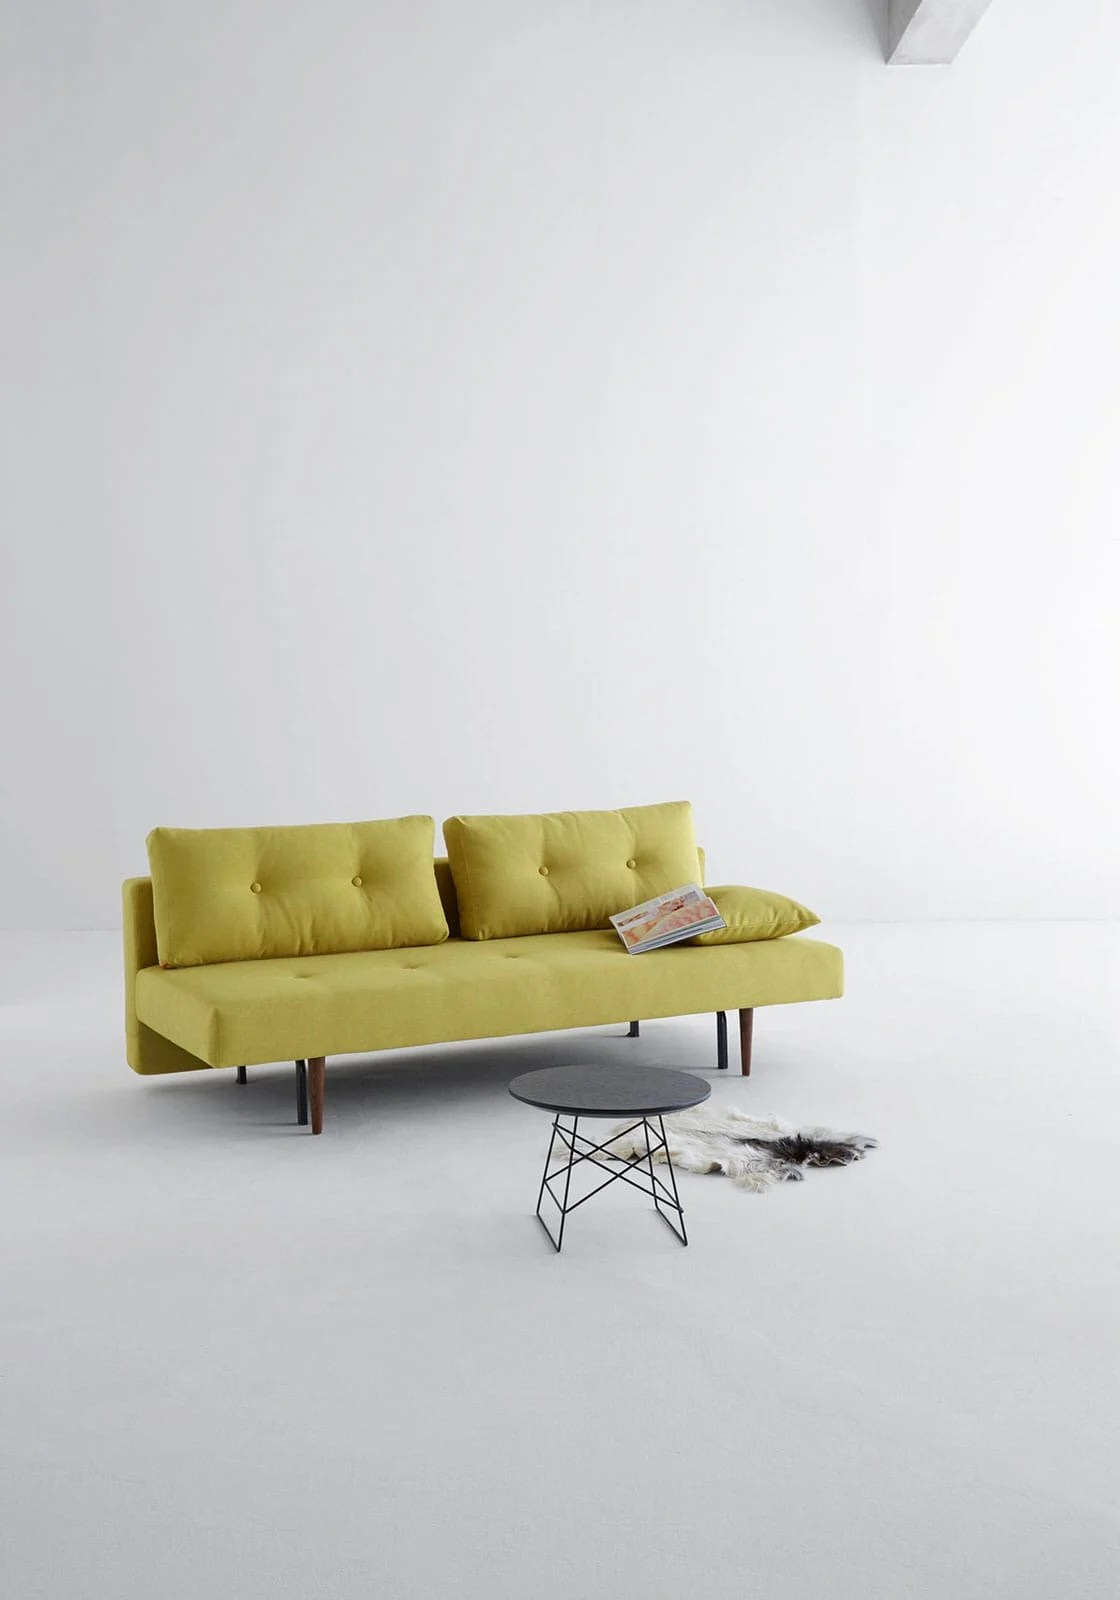 Halifax Inspirational Sofa Bed Floor Sample Recast Plus Sofa Bed Full Size Soft Mustard Flower By Innovation